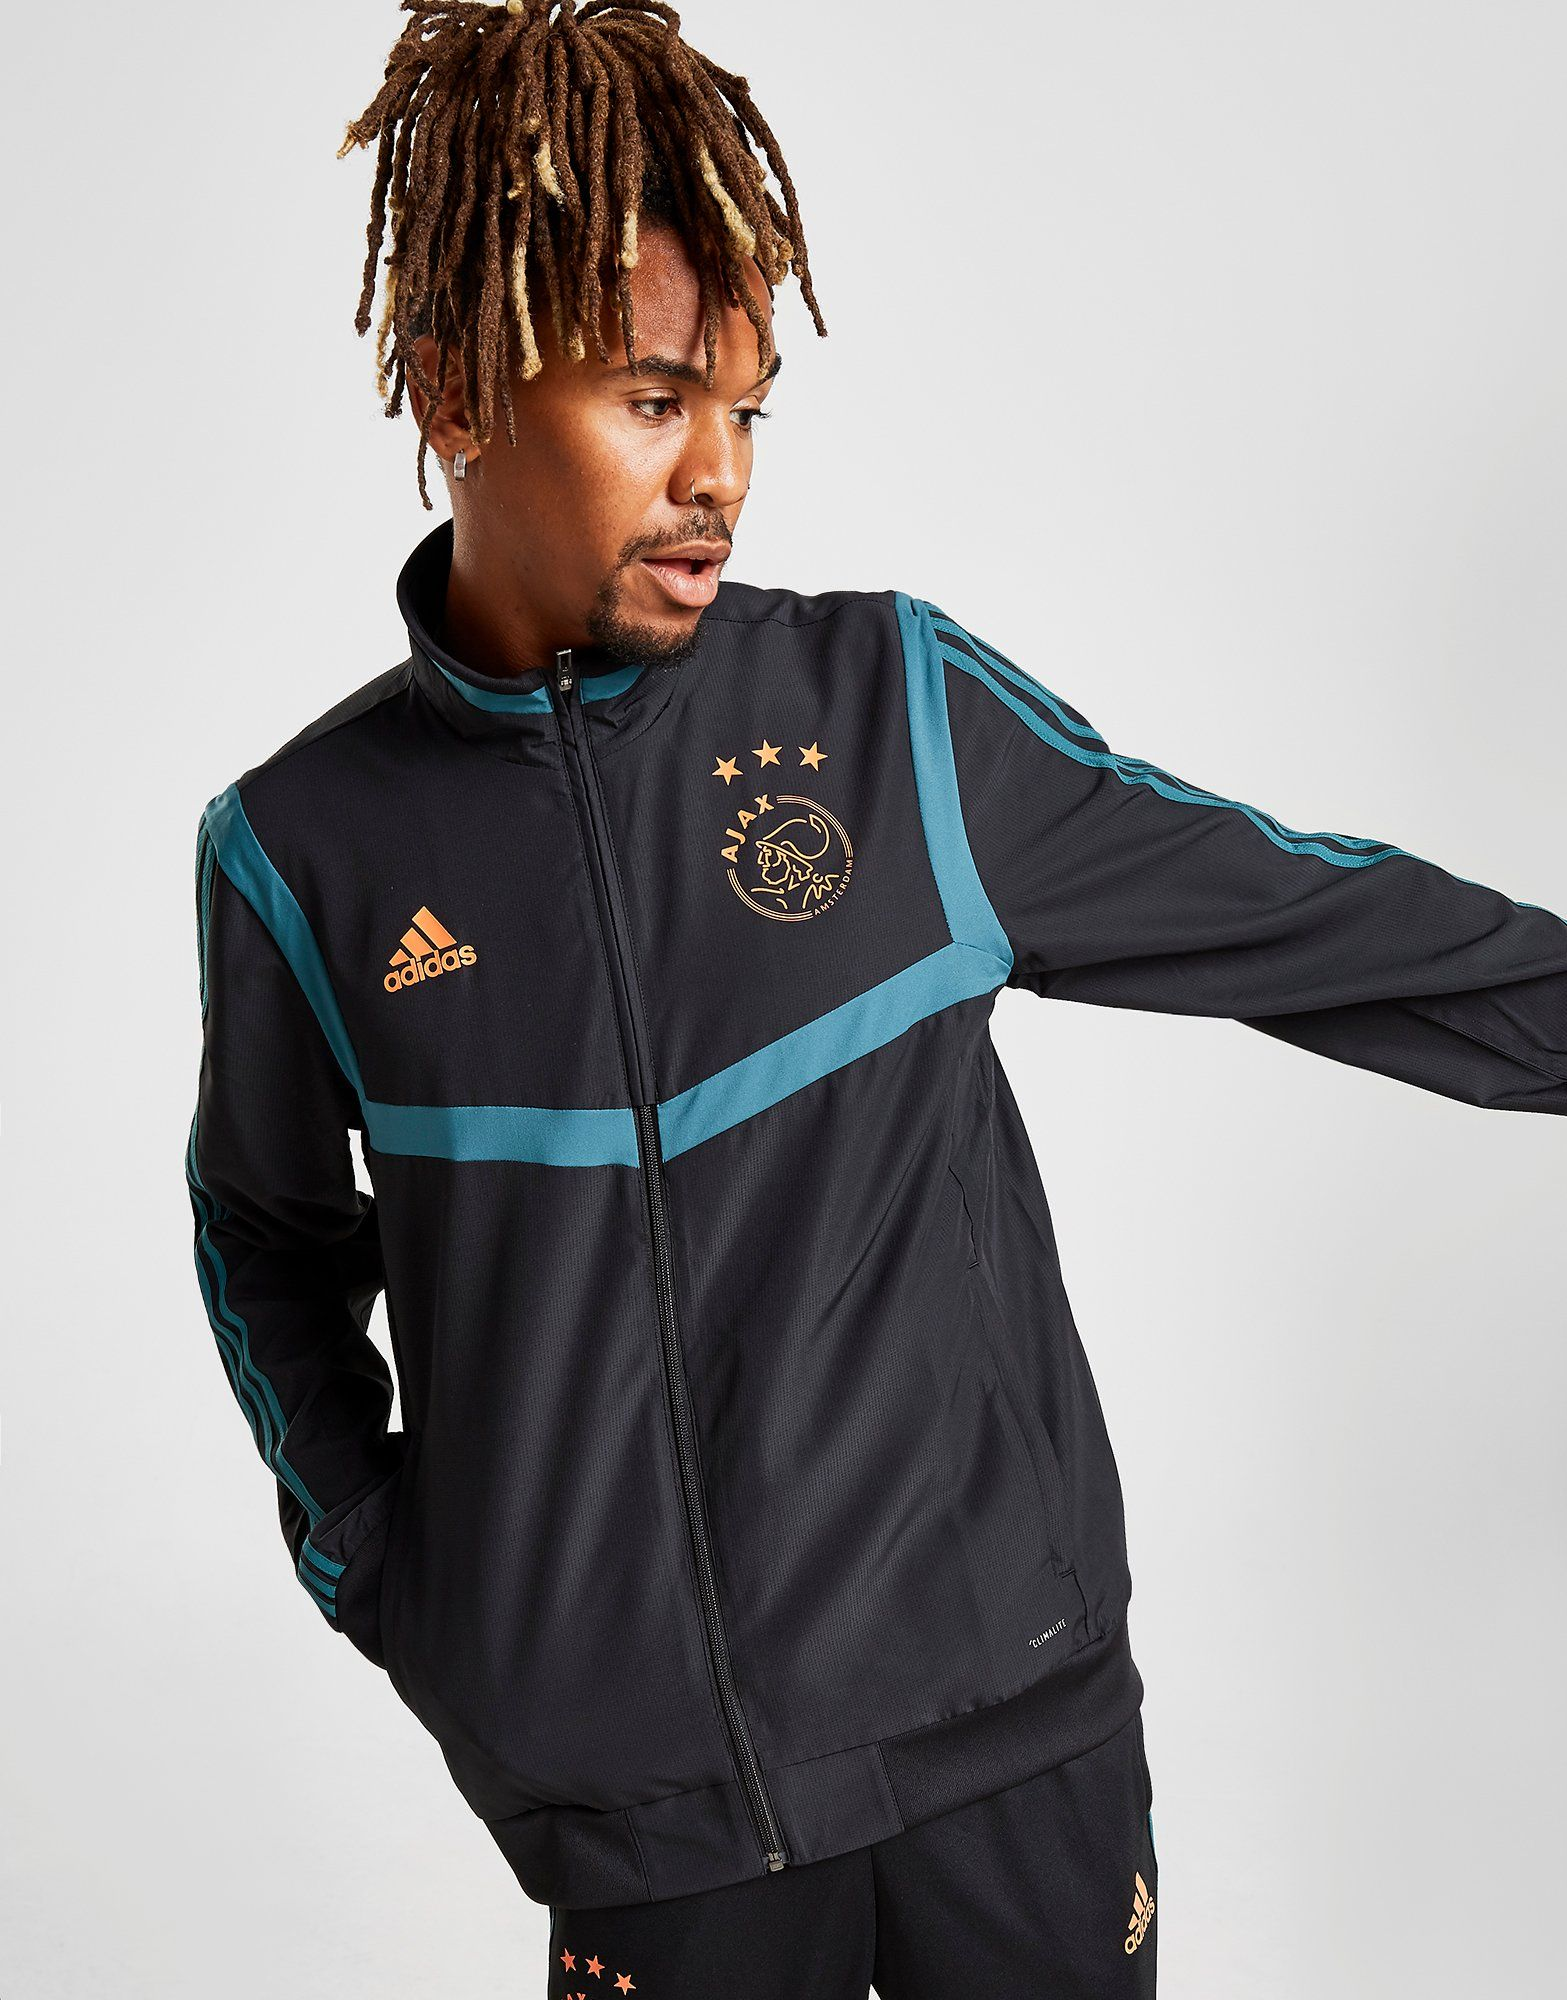 Clothes, Shoes & Accessories Men's Clothing Jacket Adidas